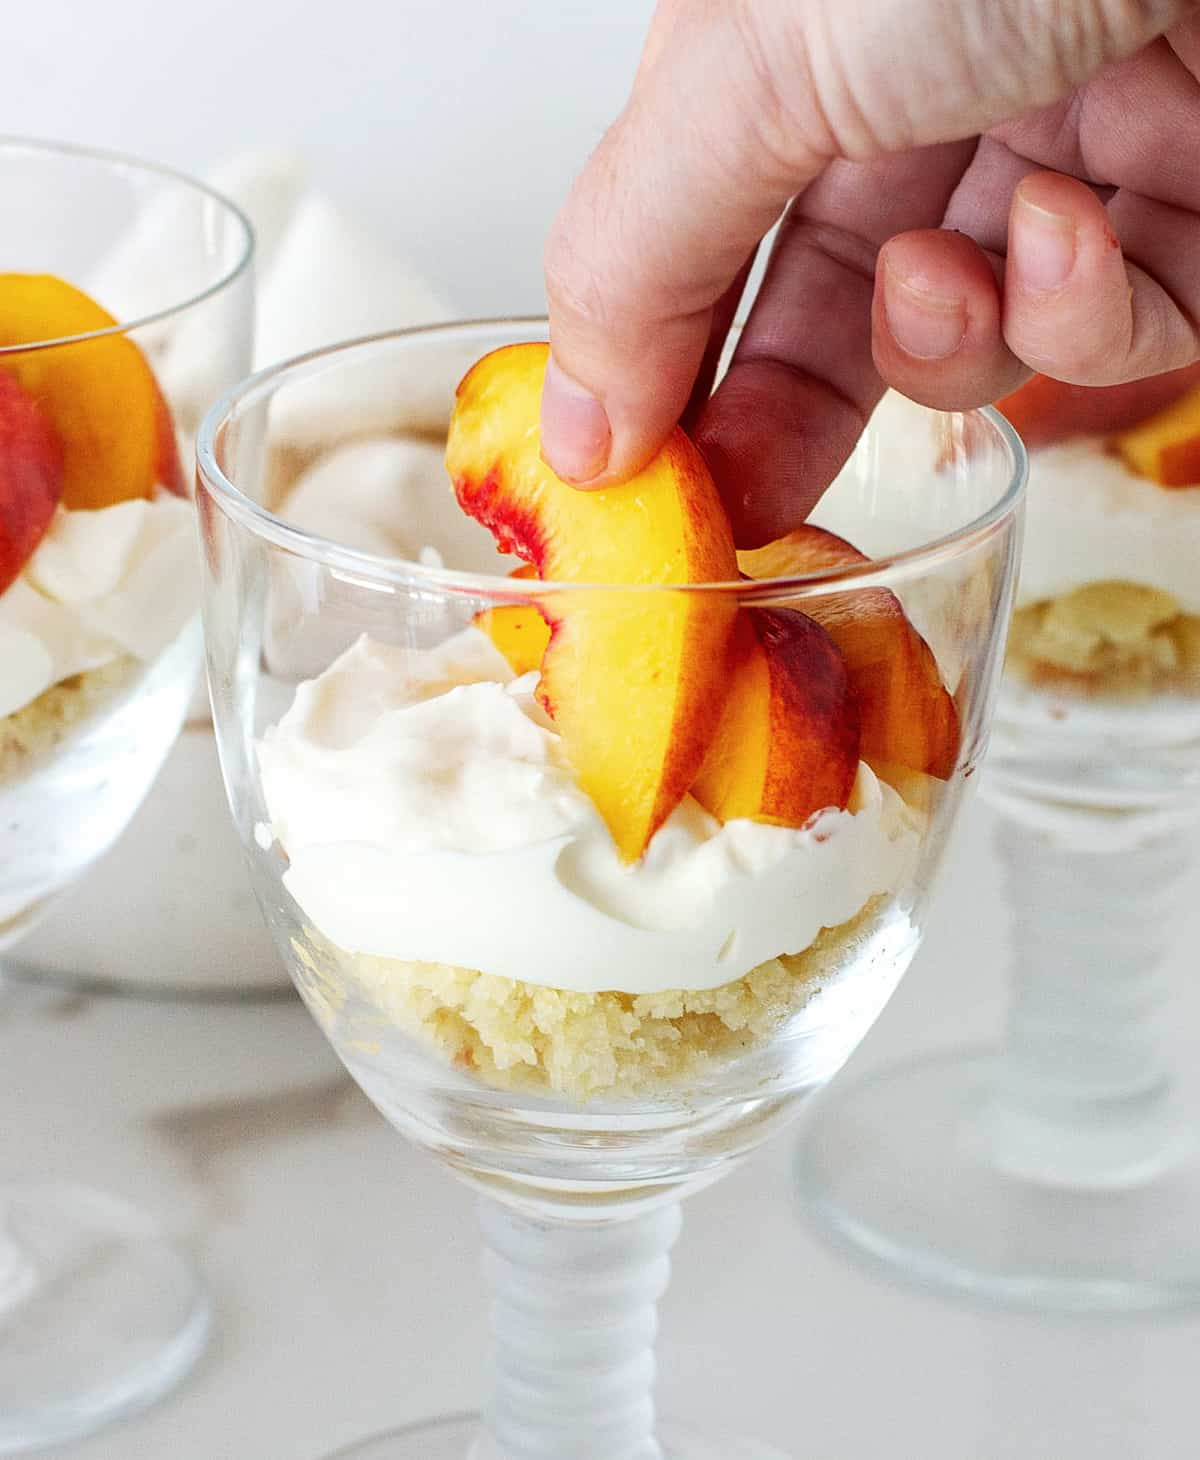 Close up of hand adding slice of yellow peach to stem glass with cream; white background